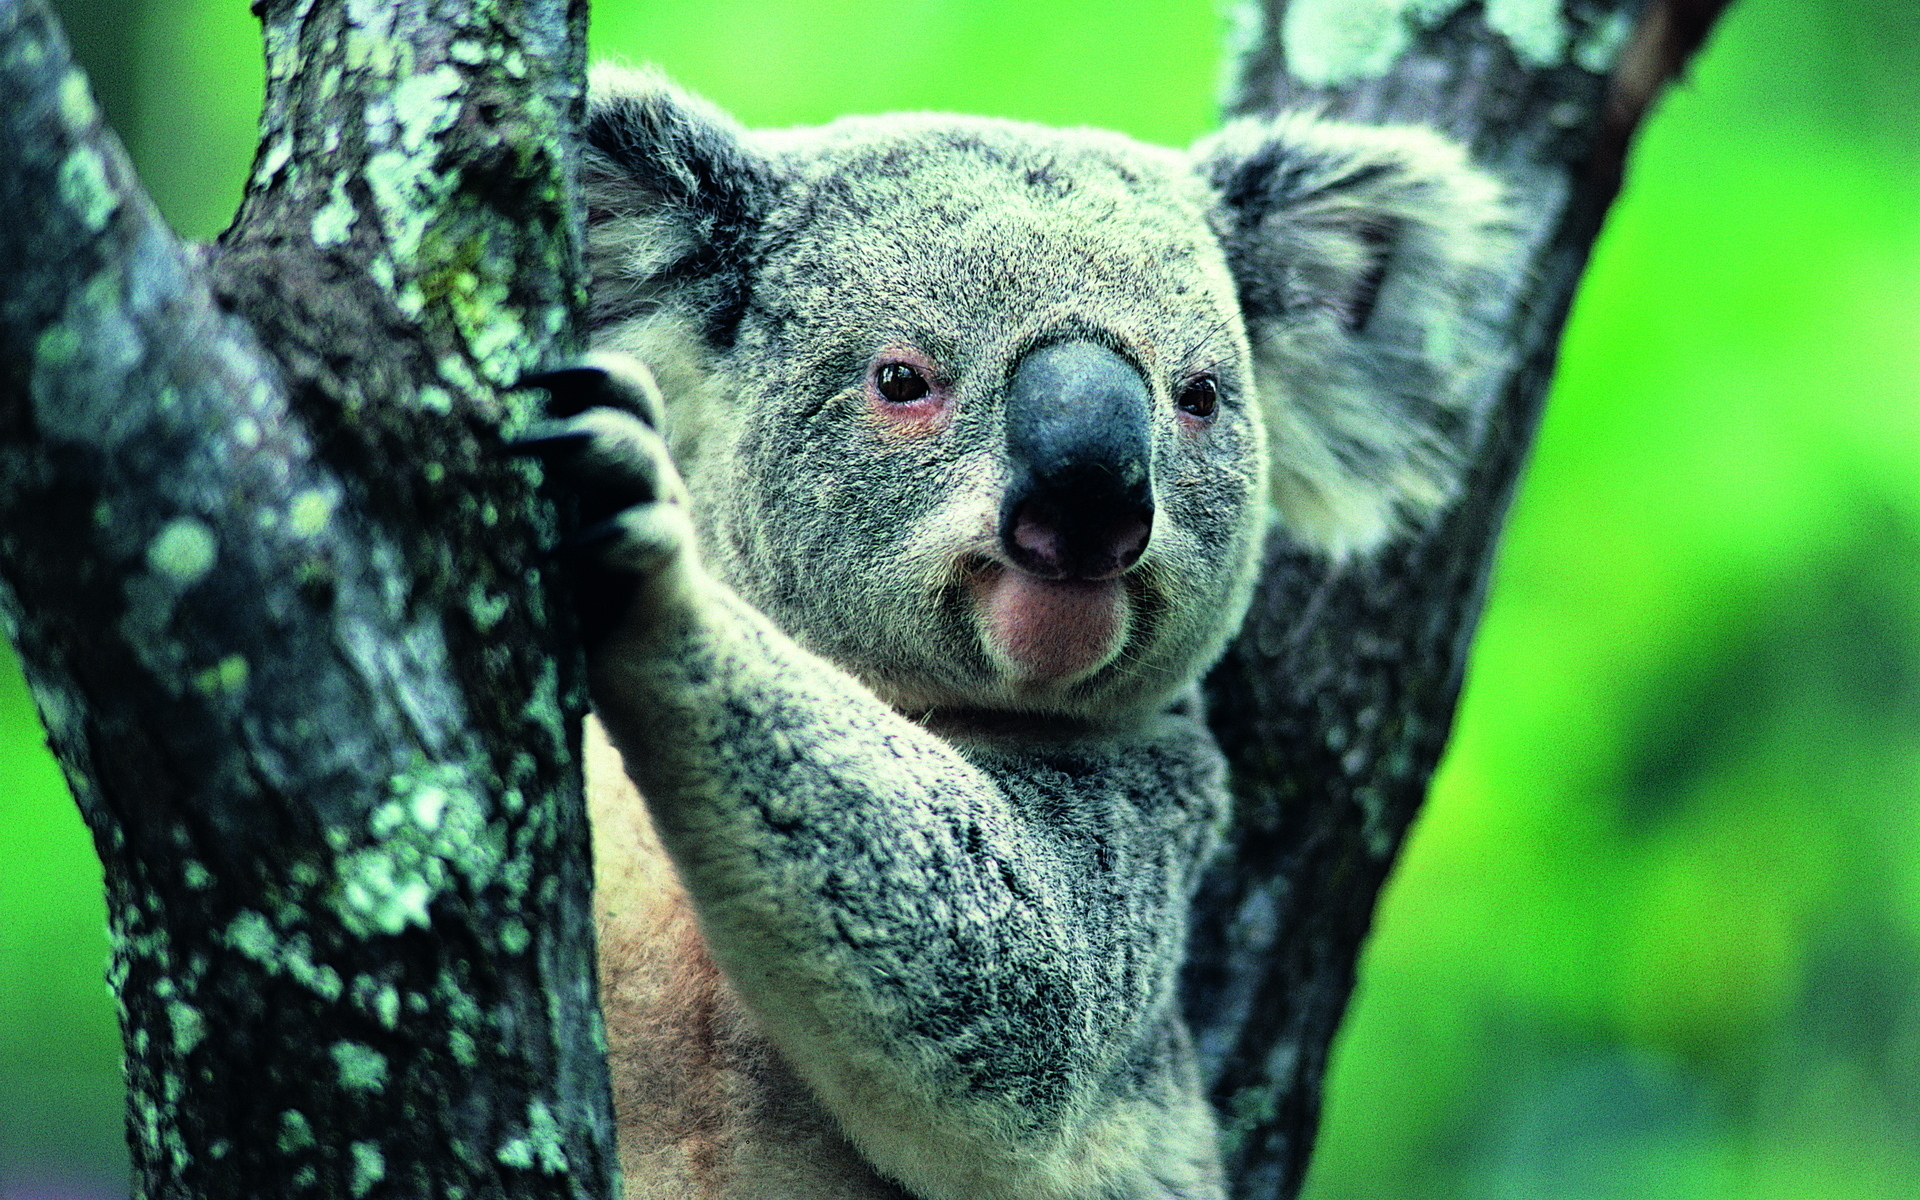 Koala HD Wallpaper | HD Wallpapers | Pictures | Images | Backgrounds ...